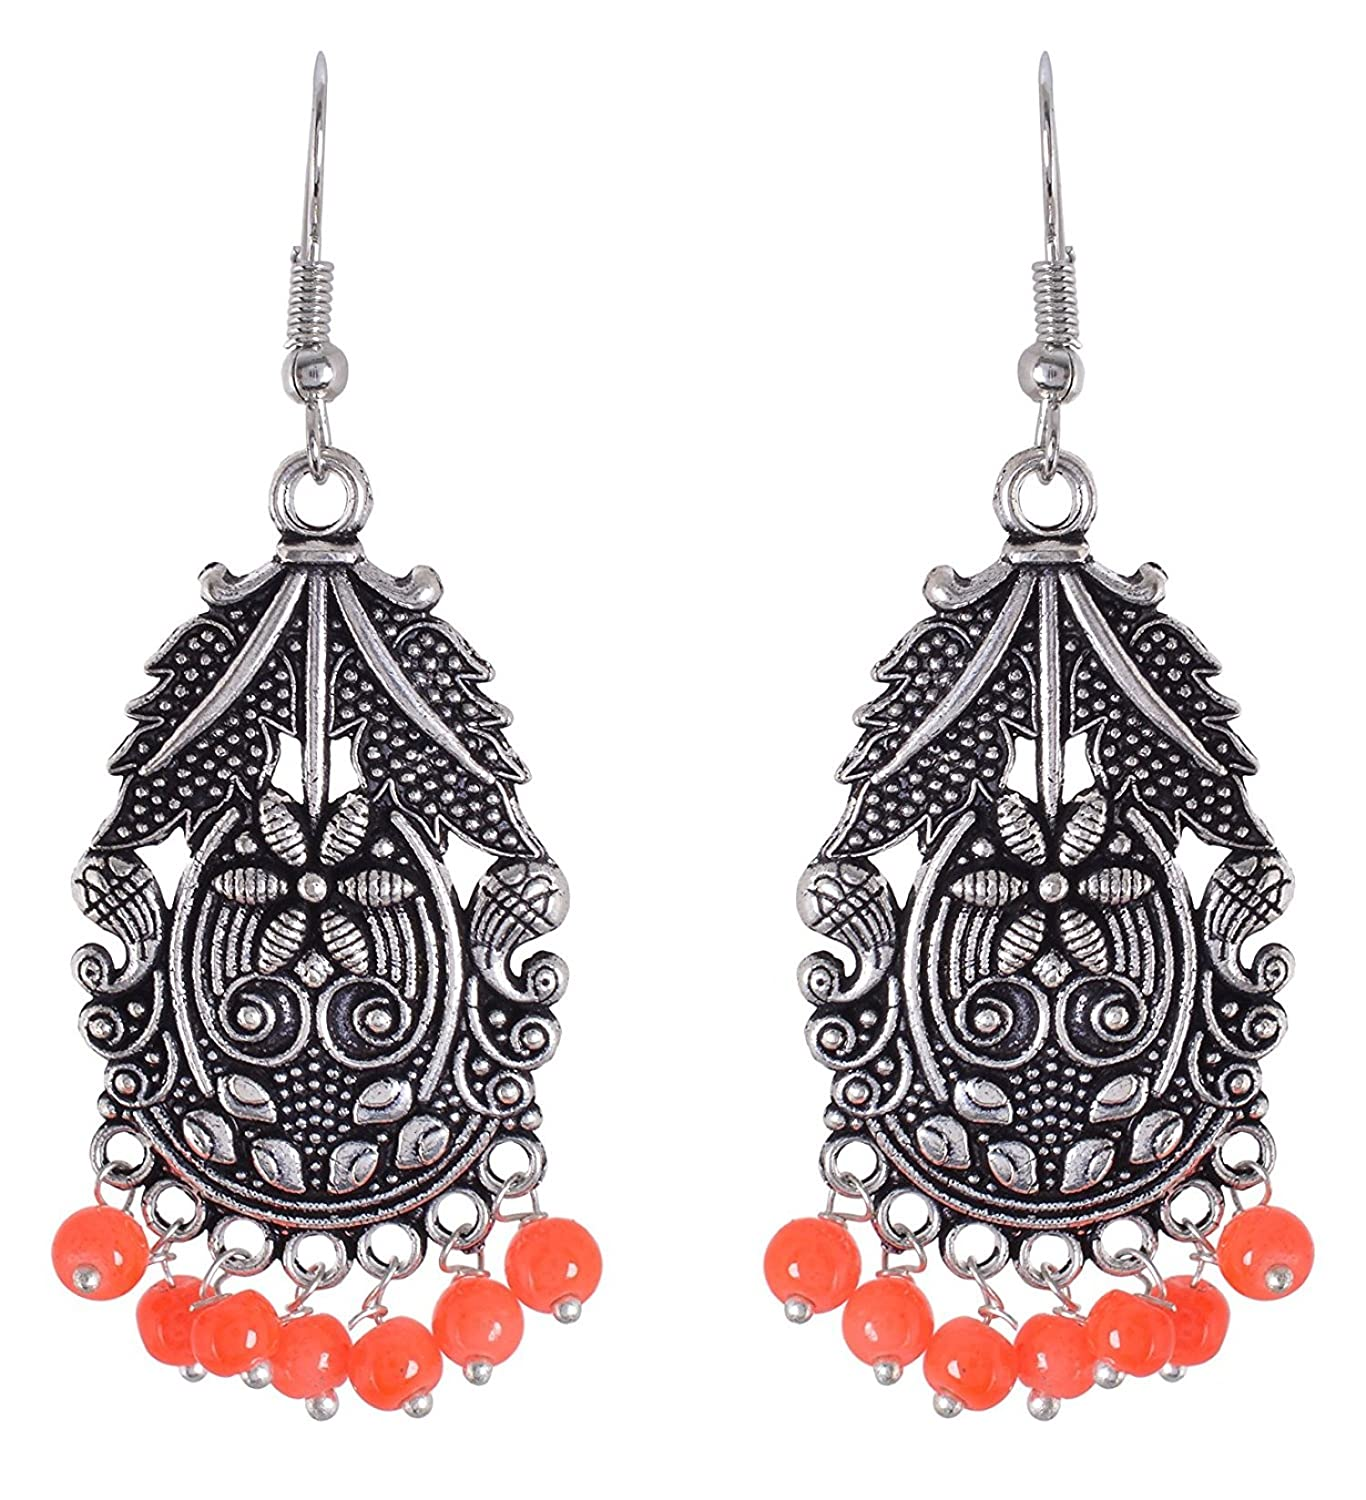 Subharpit Floral Orange Oxidized Silver Traditional Indian Dangle Earrings for Women and Girls